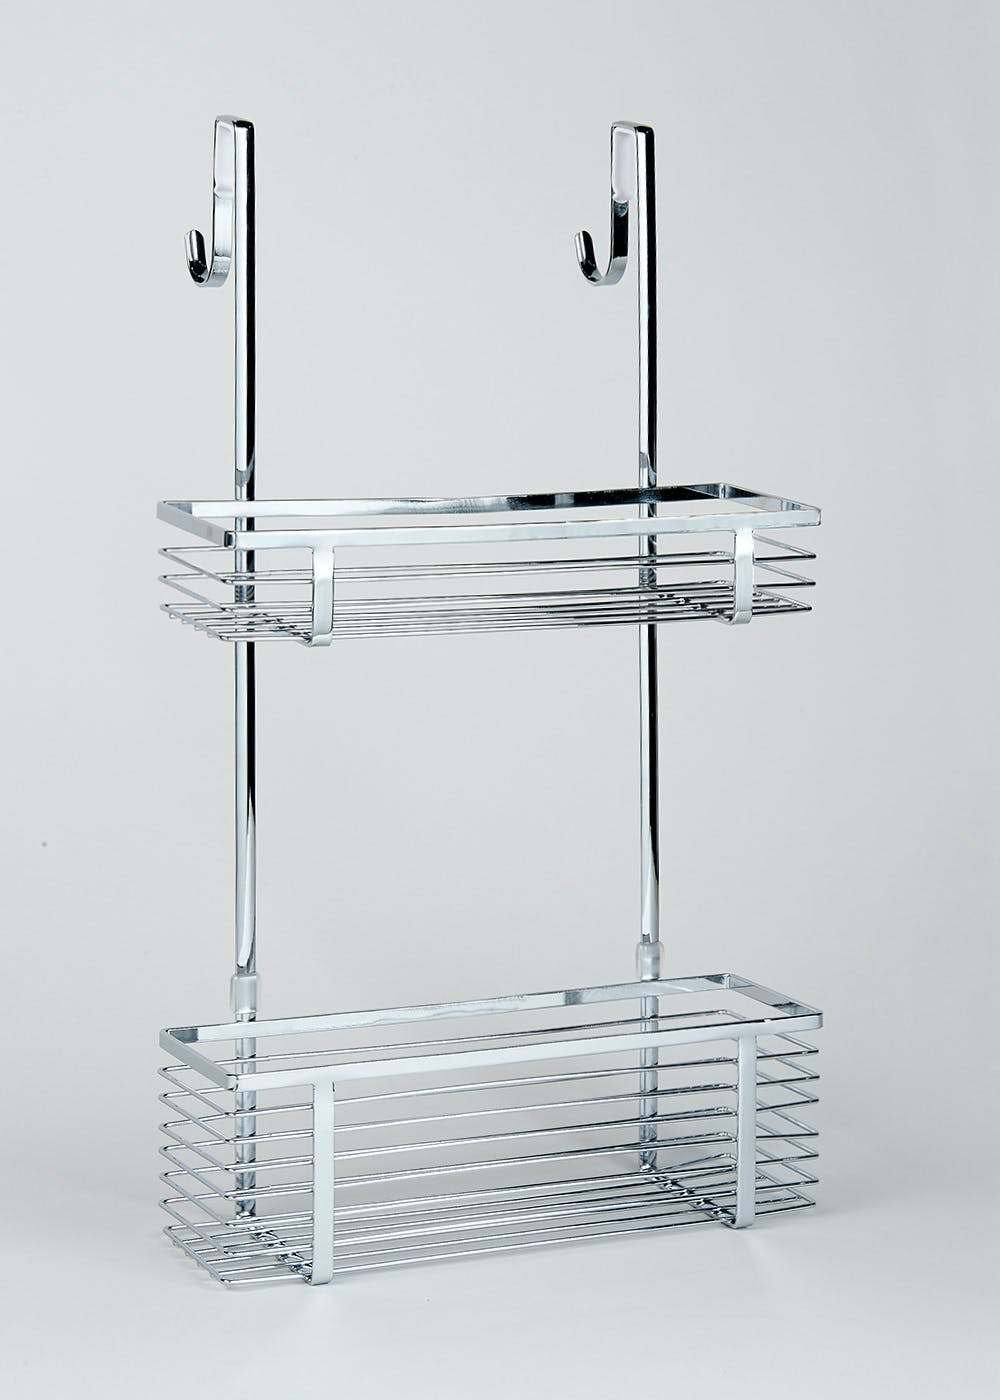 Chrome Over Shower Door Caddy (51cm x 30cm x 10cm) – Metallic – Matalan